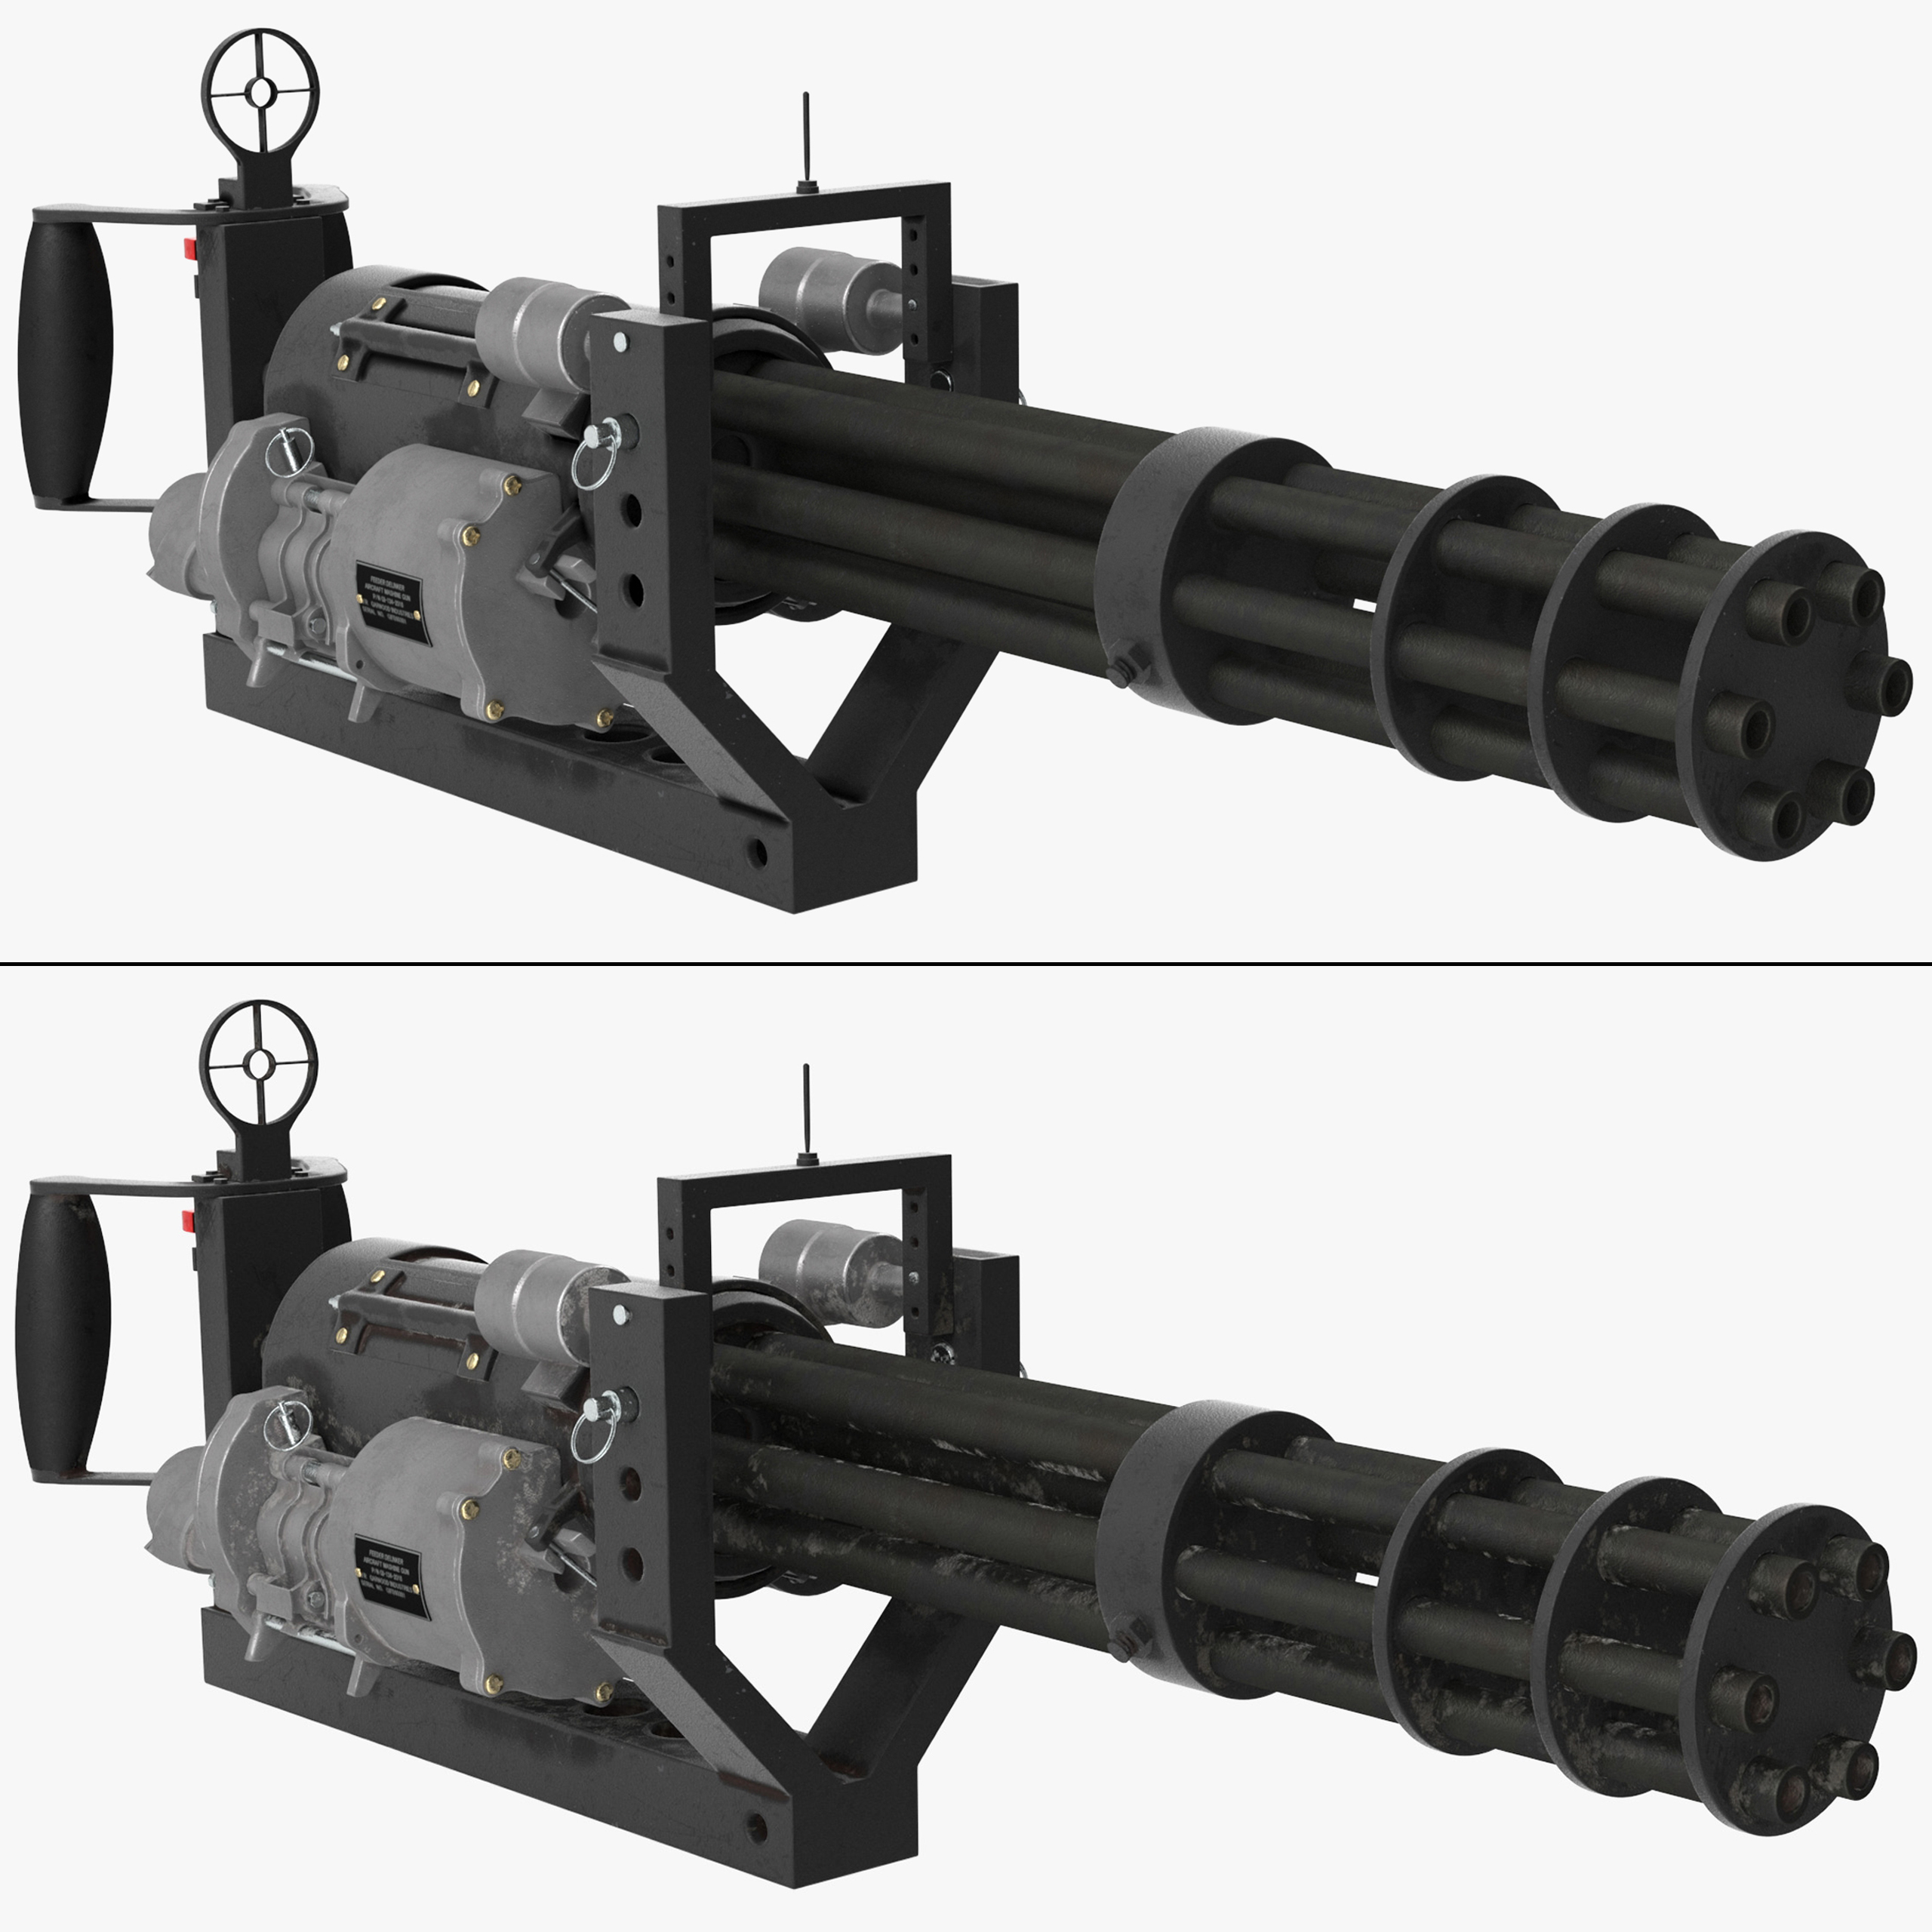 M134 Minigun With Mounting Bracket Collection